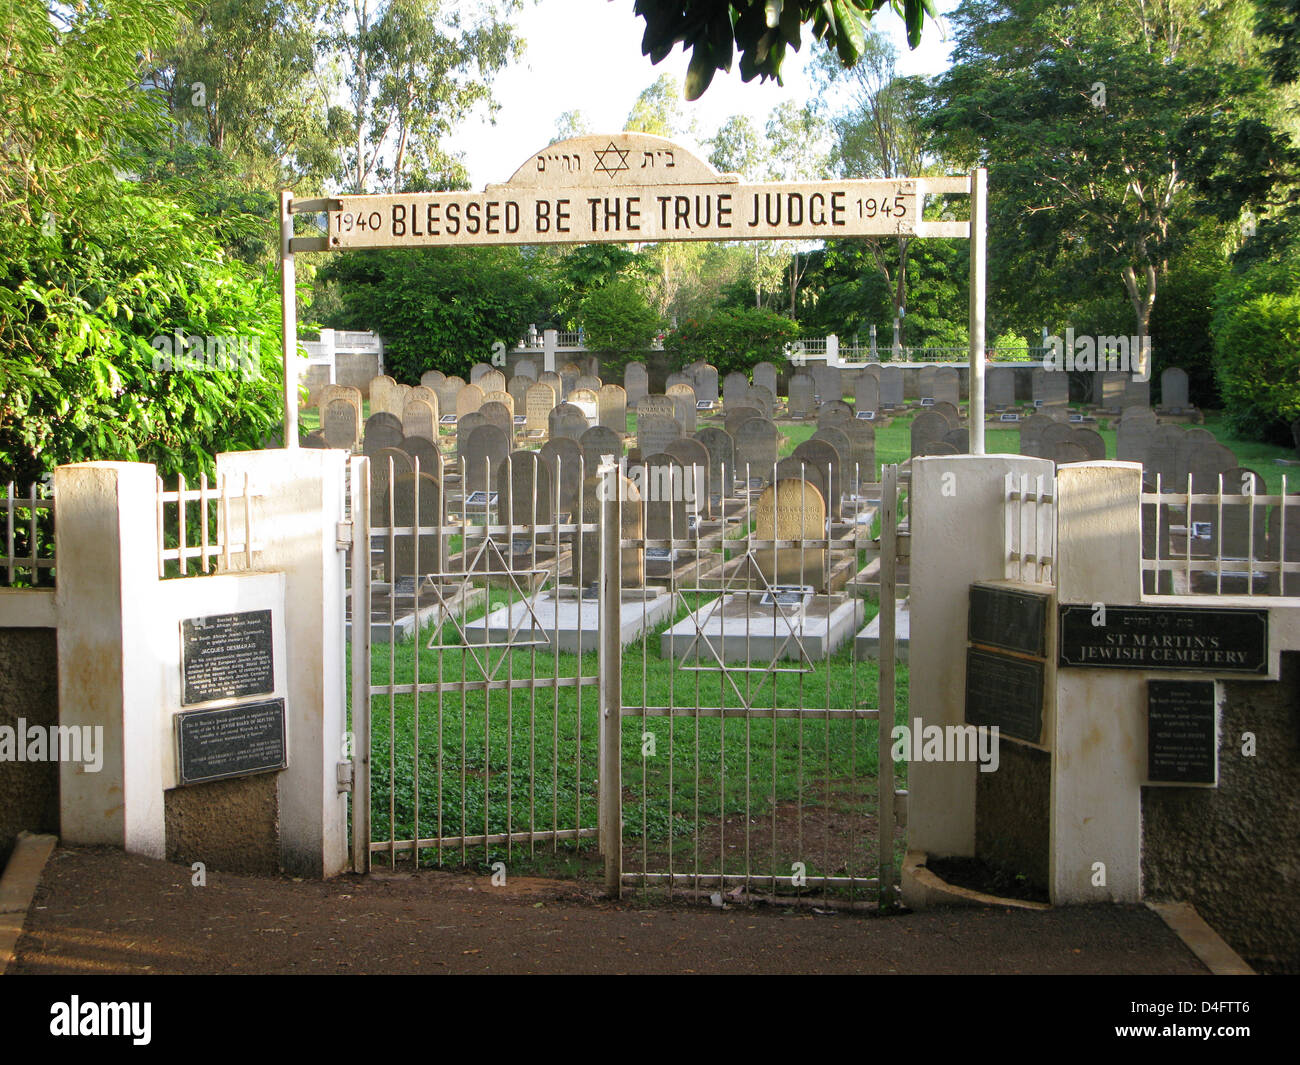 The photo shows the Jewish part of the cemetery St Martin